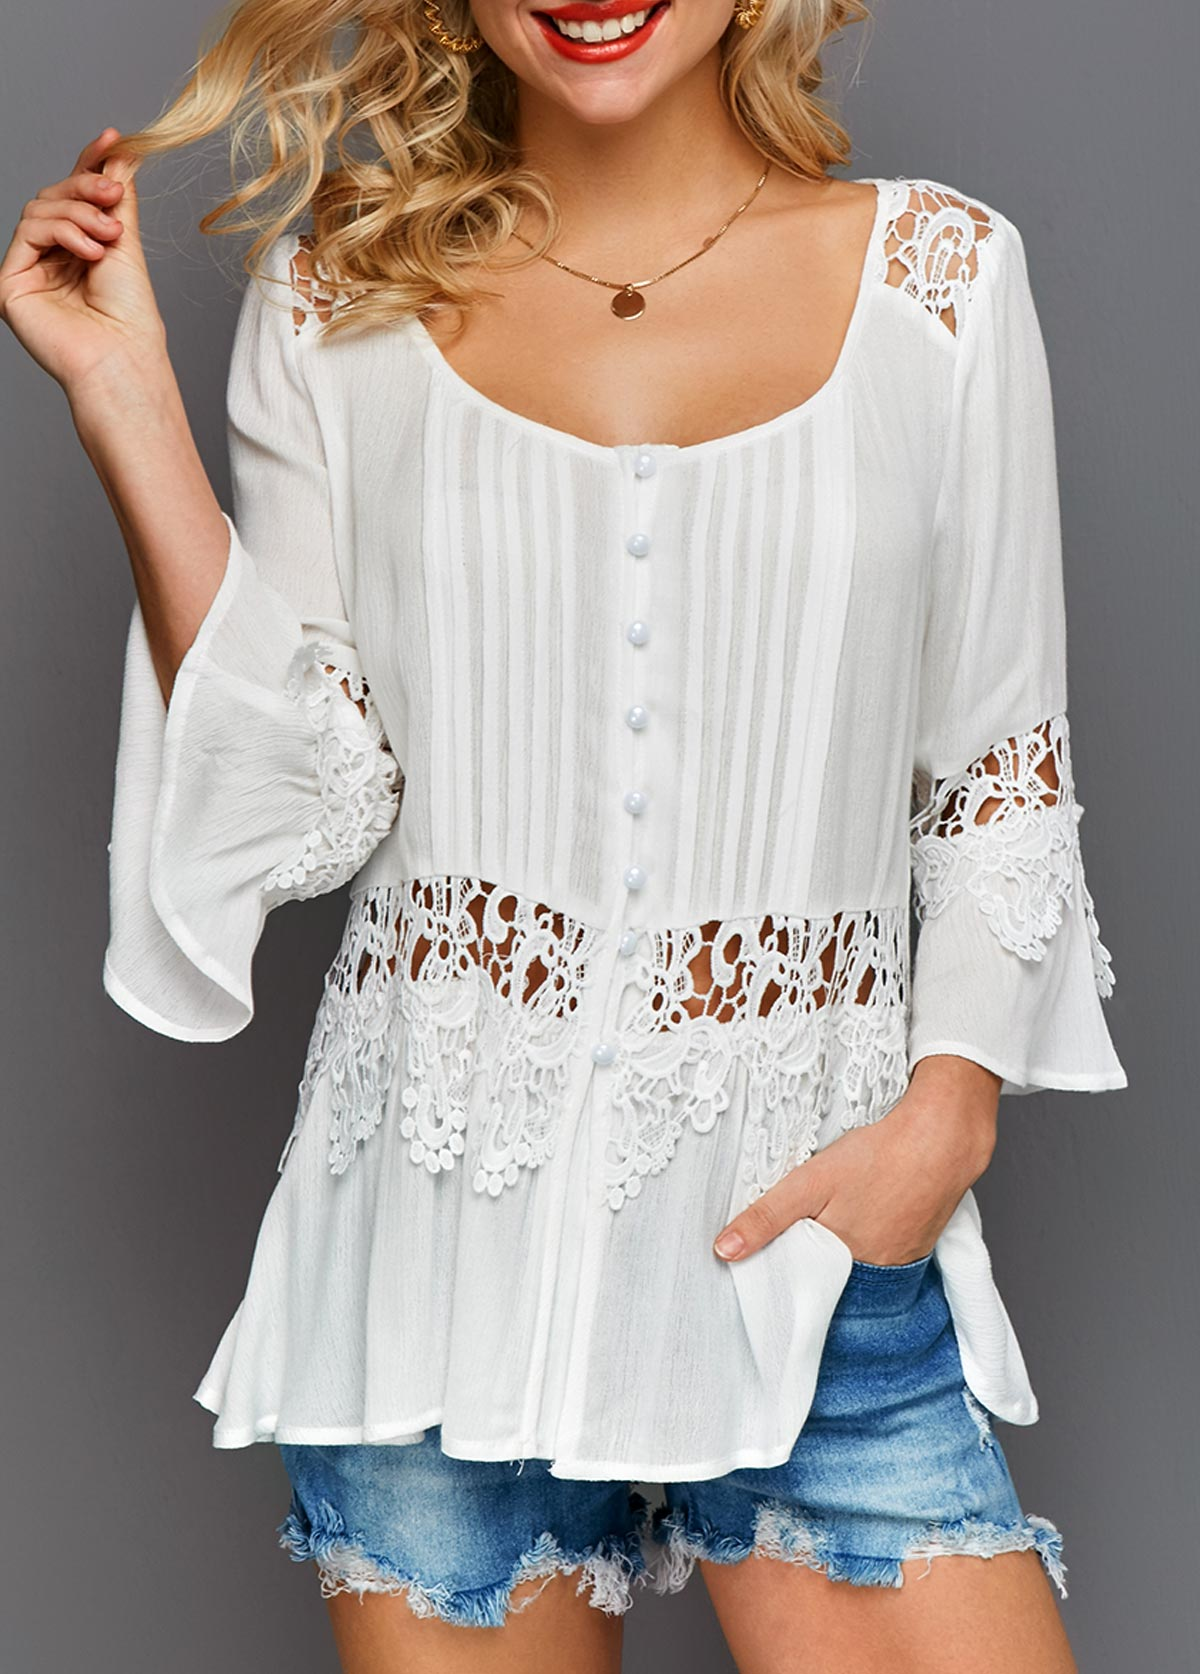 Scoop Neck Flare Cuff Crochet Detail White Blouse